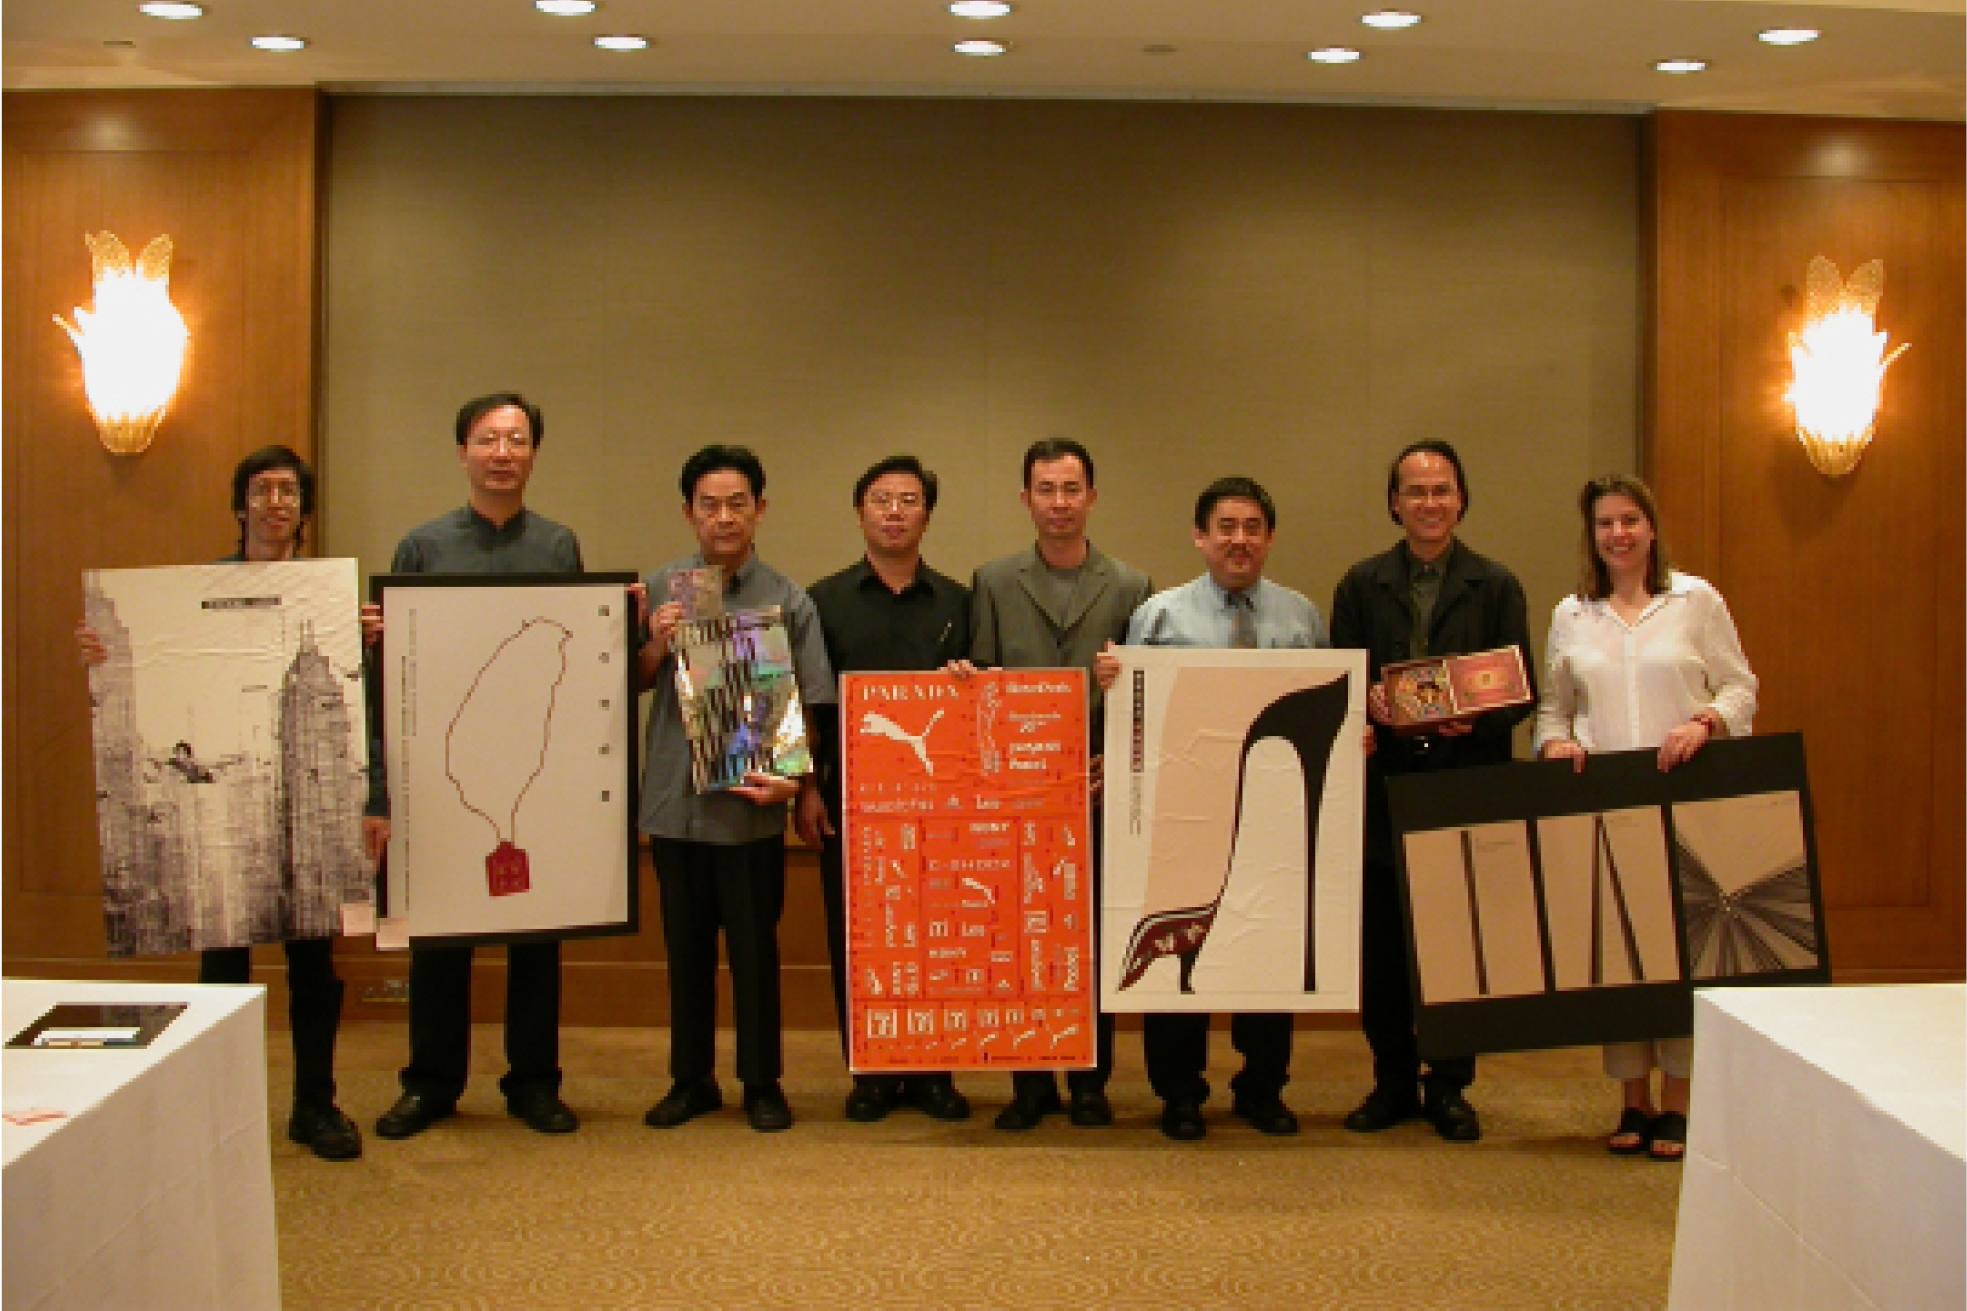 whwWeb_About_whw_Activities_TW_ICO_Judging Posters.jpg